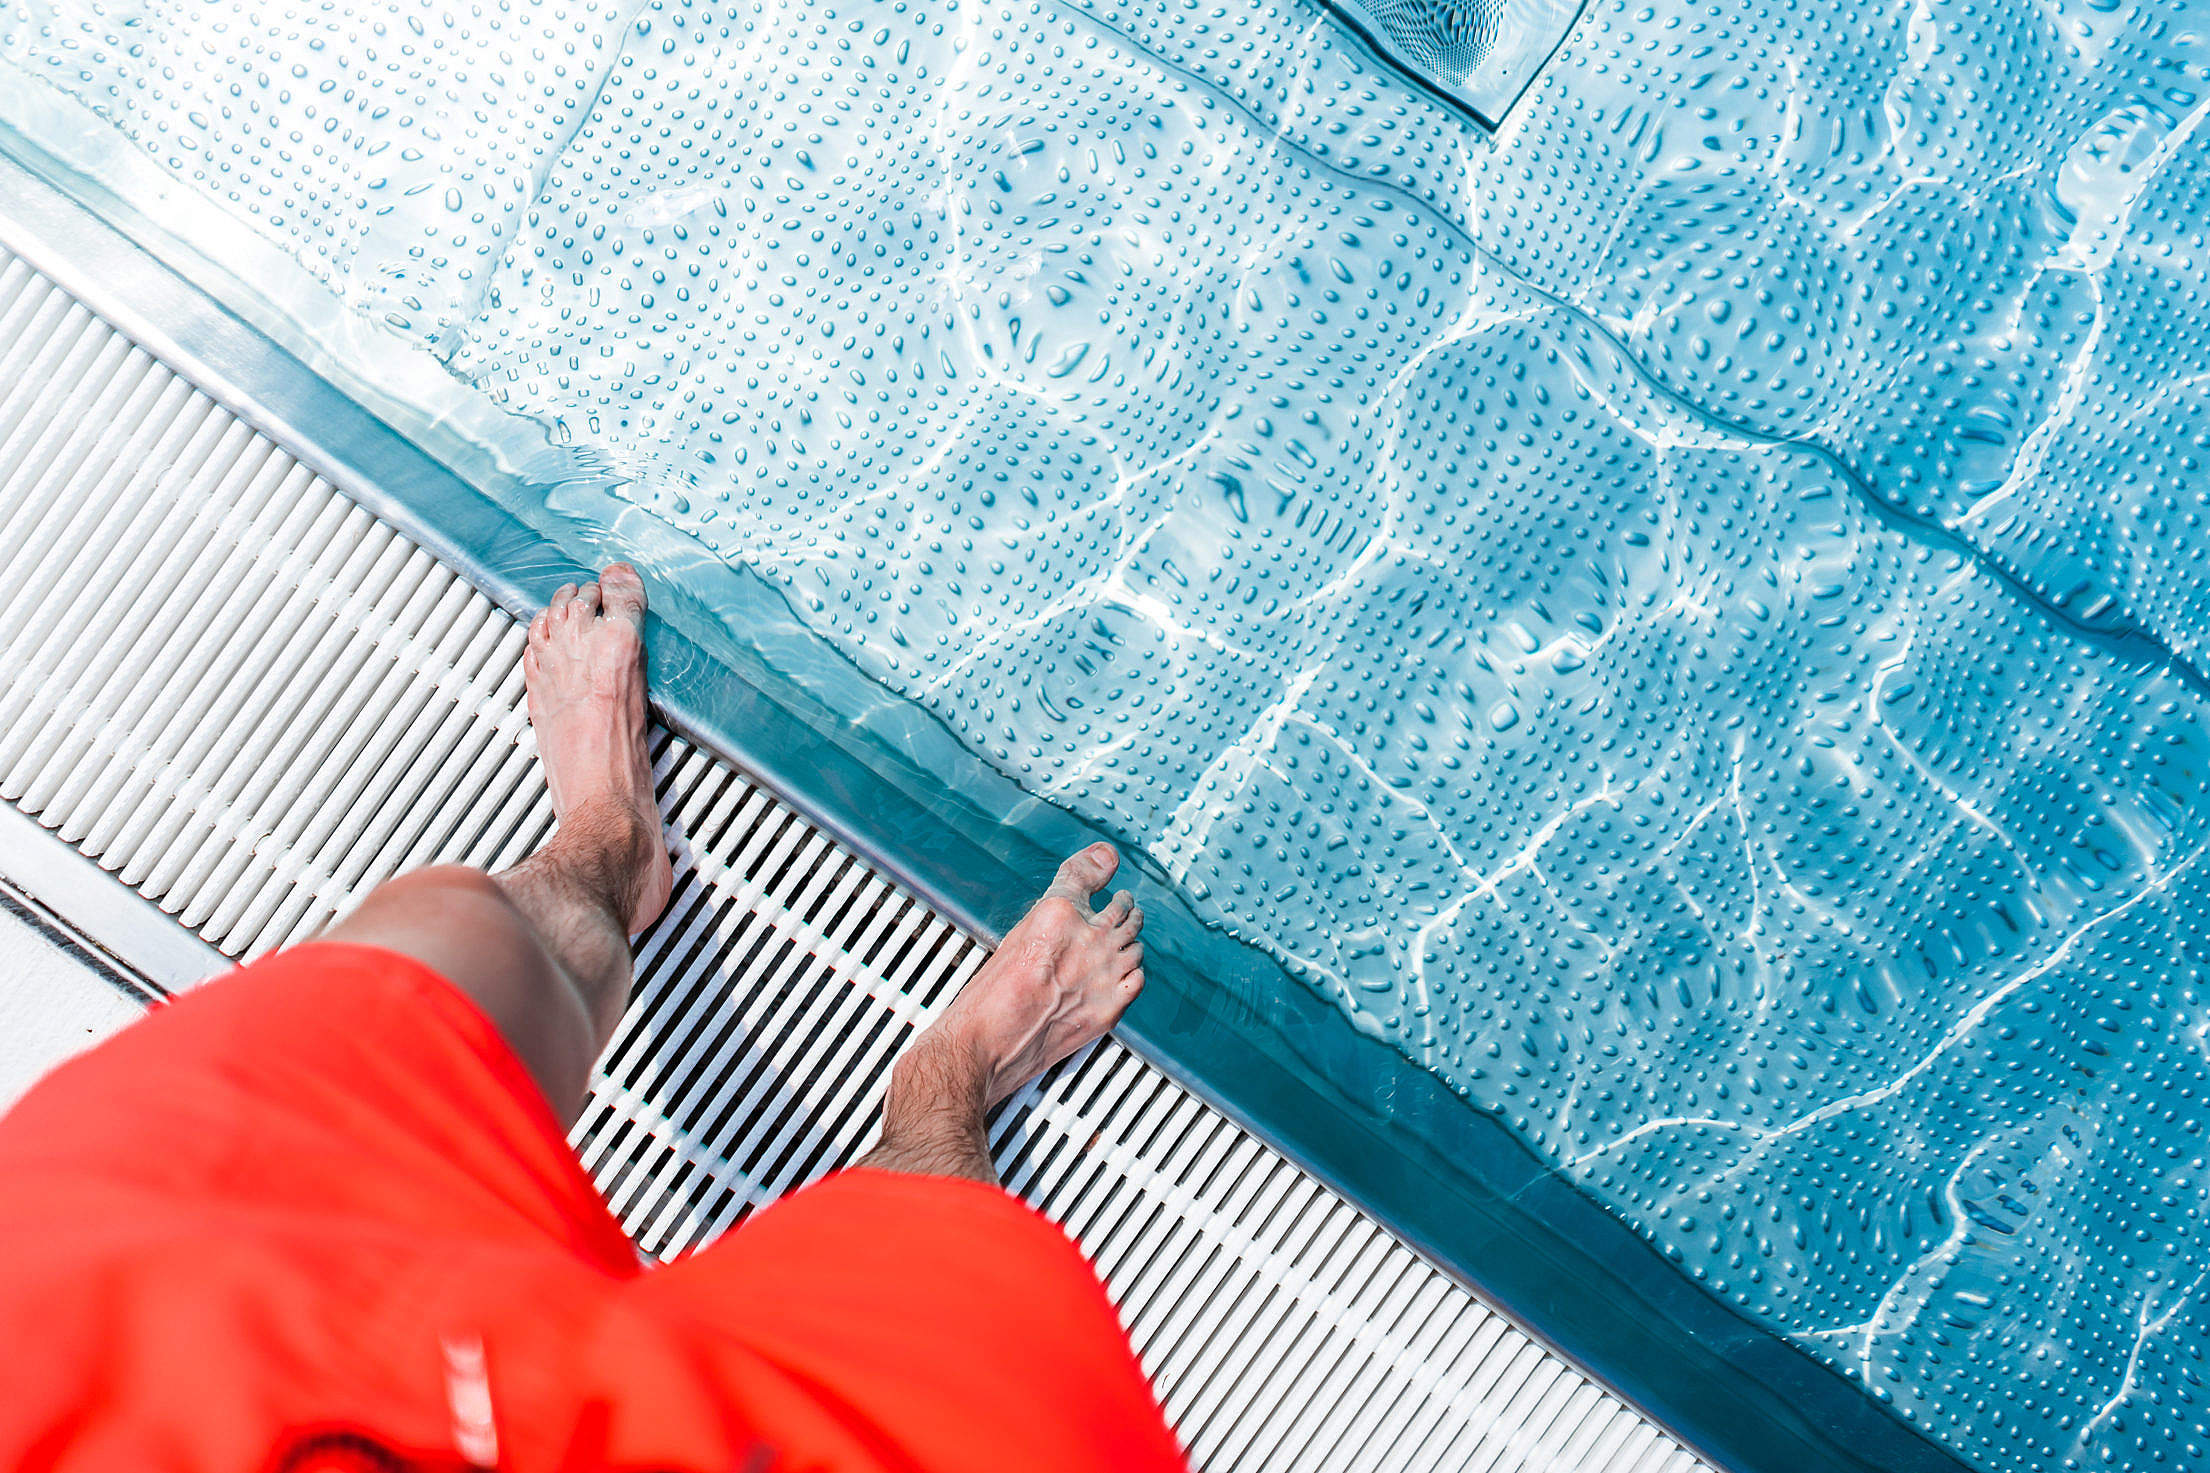 Standing at The Edge of Swimming Pool Free Stock Photo